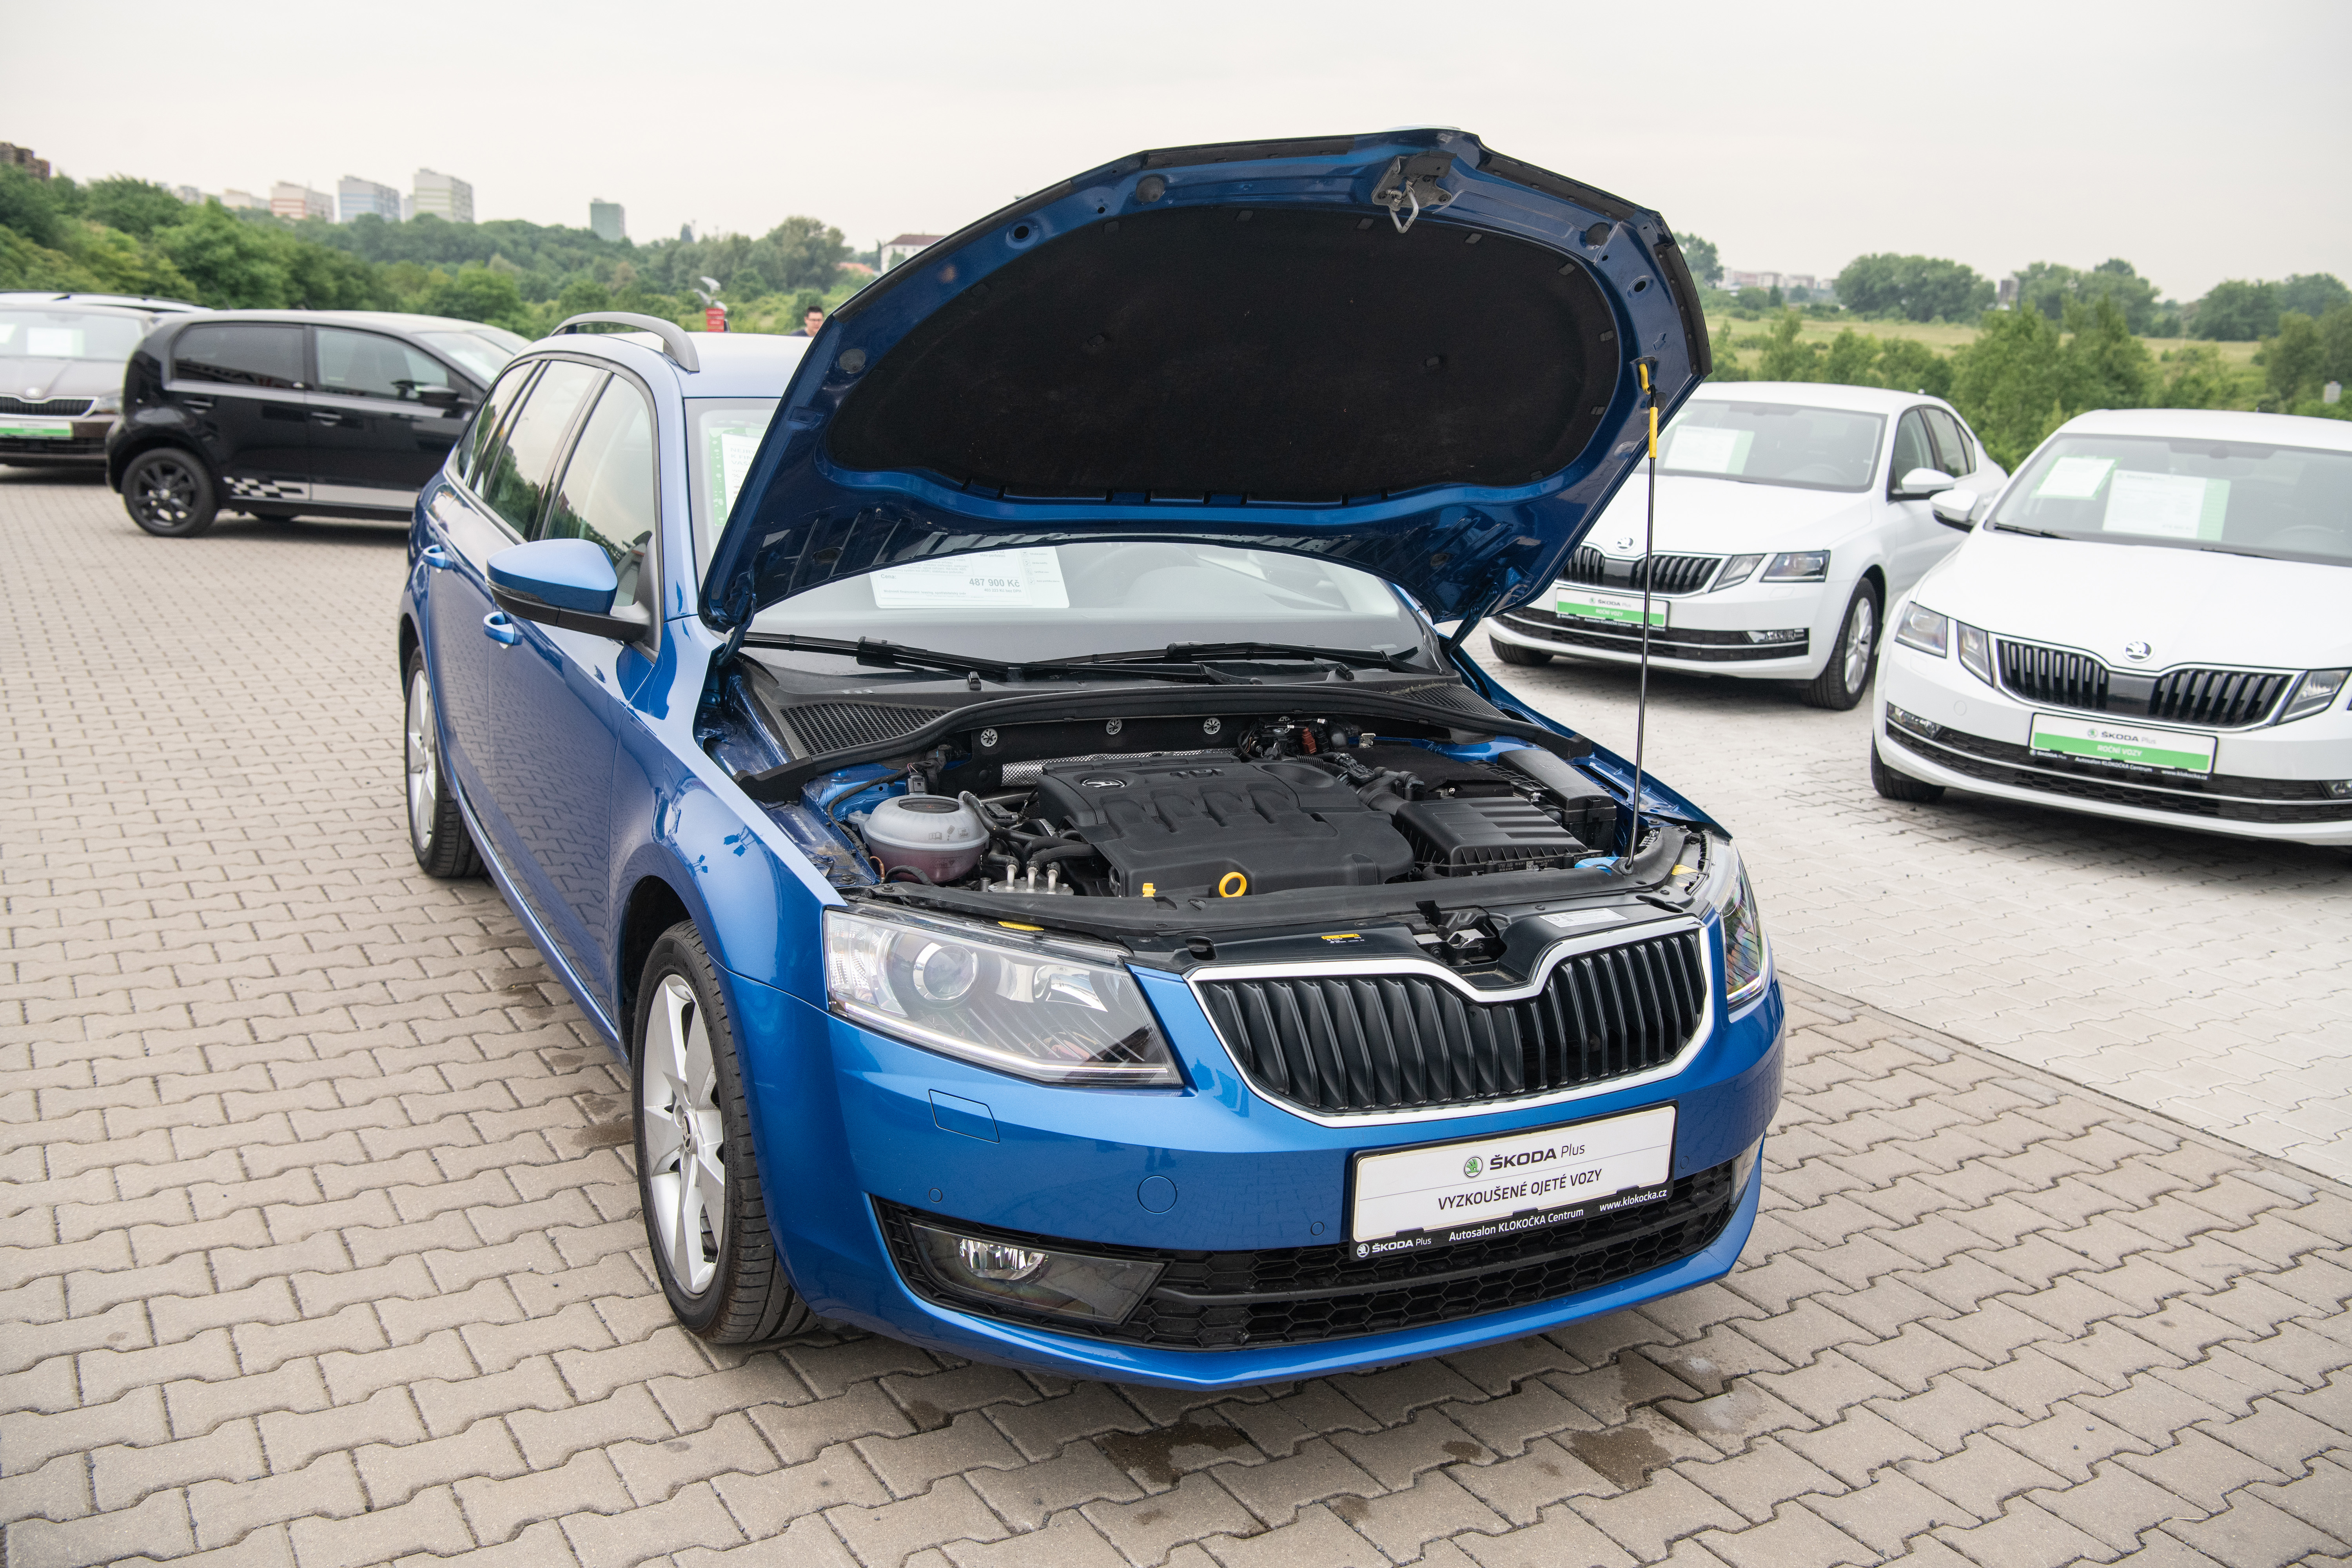 10 Tips on Selling Your Car Well - ŠKODA Storyboard